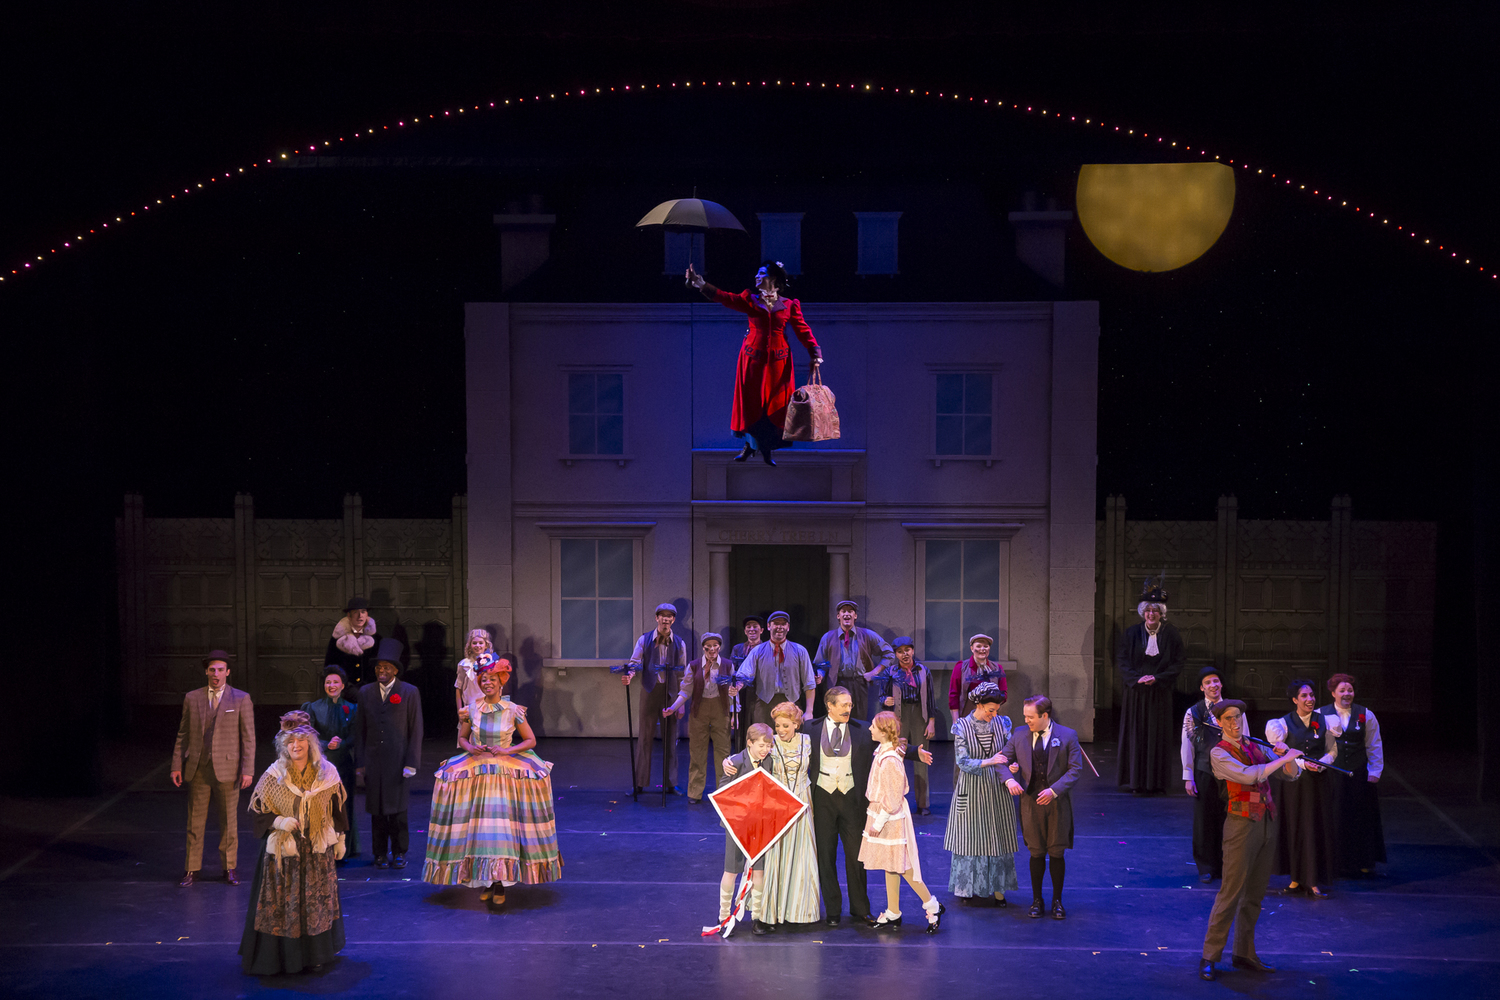 BWW Review: MARY POPPINS JR. is 'Practically Perfect' at The Children's Theatre of Cincinnati!